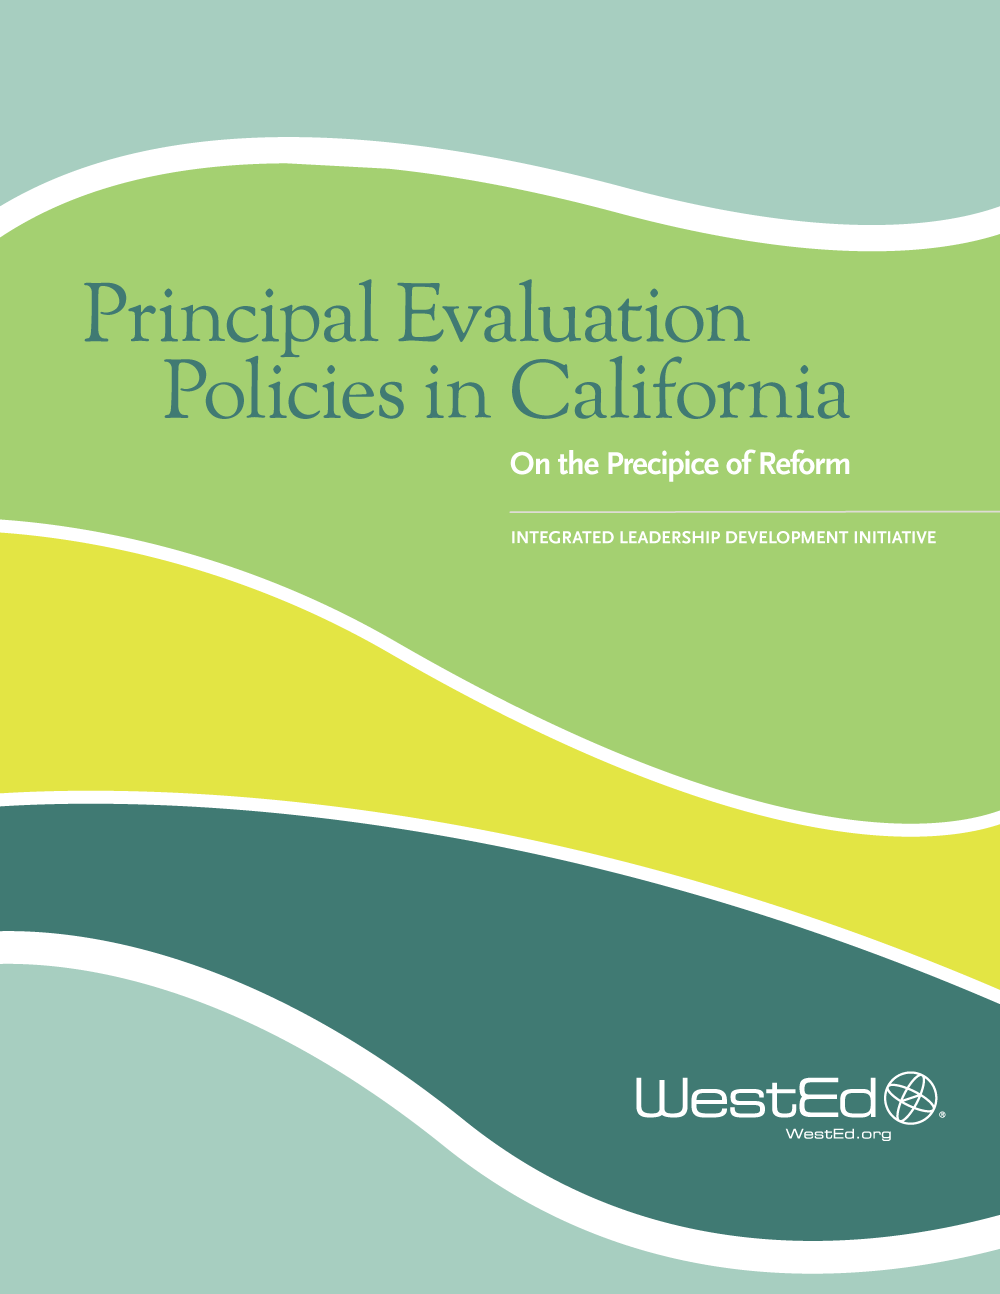 Cover image for Principal Evaluation Policies in California on the Precipice of Reform